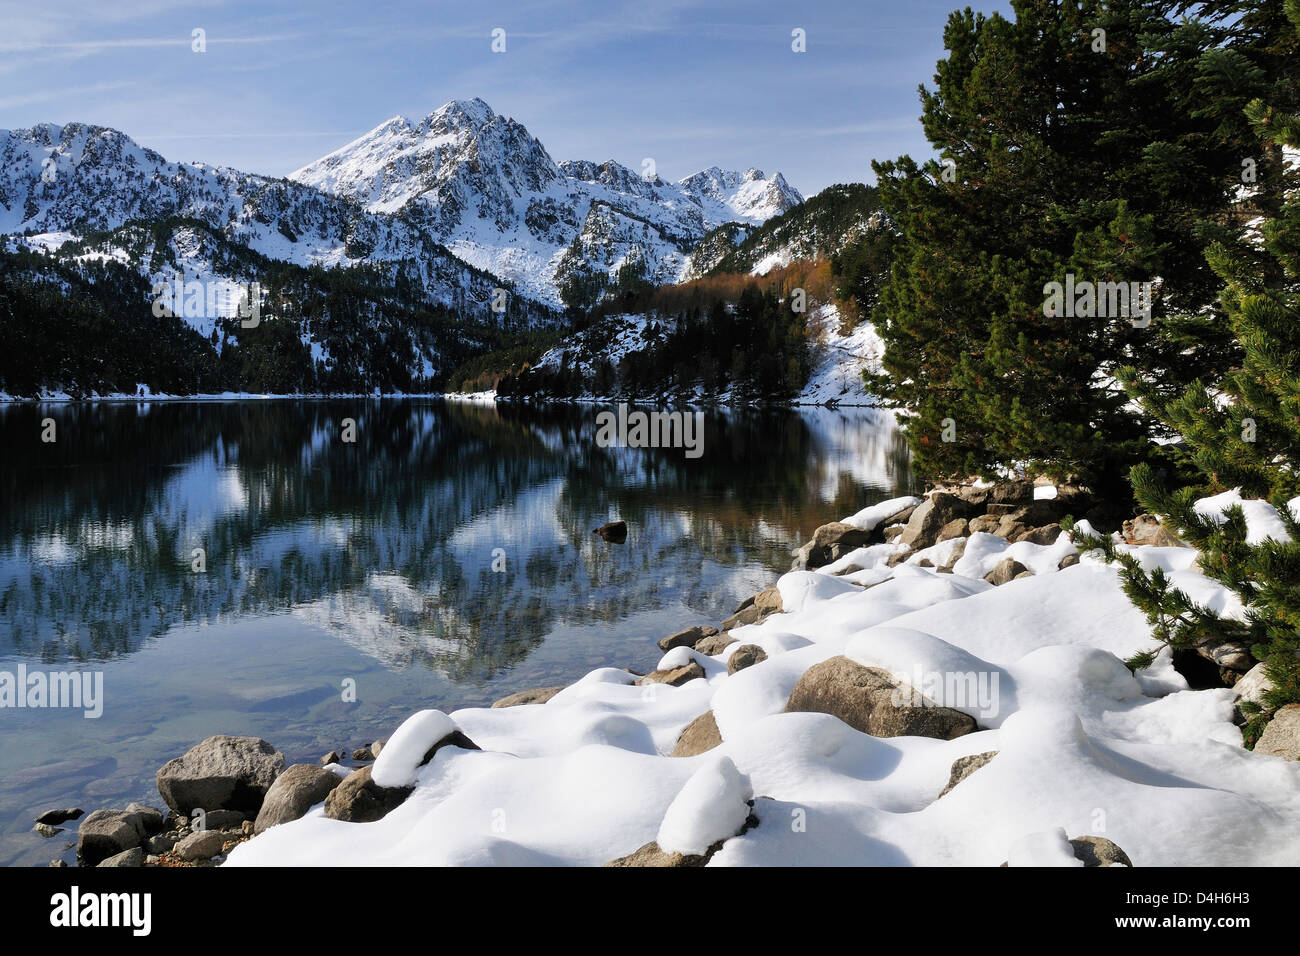 St. Maurici Lake and snowy peaks of Aigues Tortes National Park in winter, Pyrenees, Catalonia, Spain - Stock Image